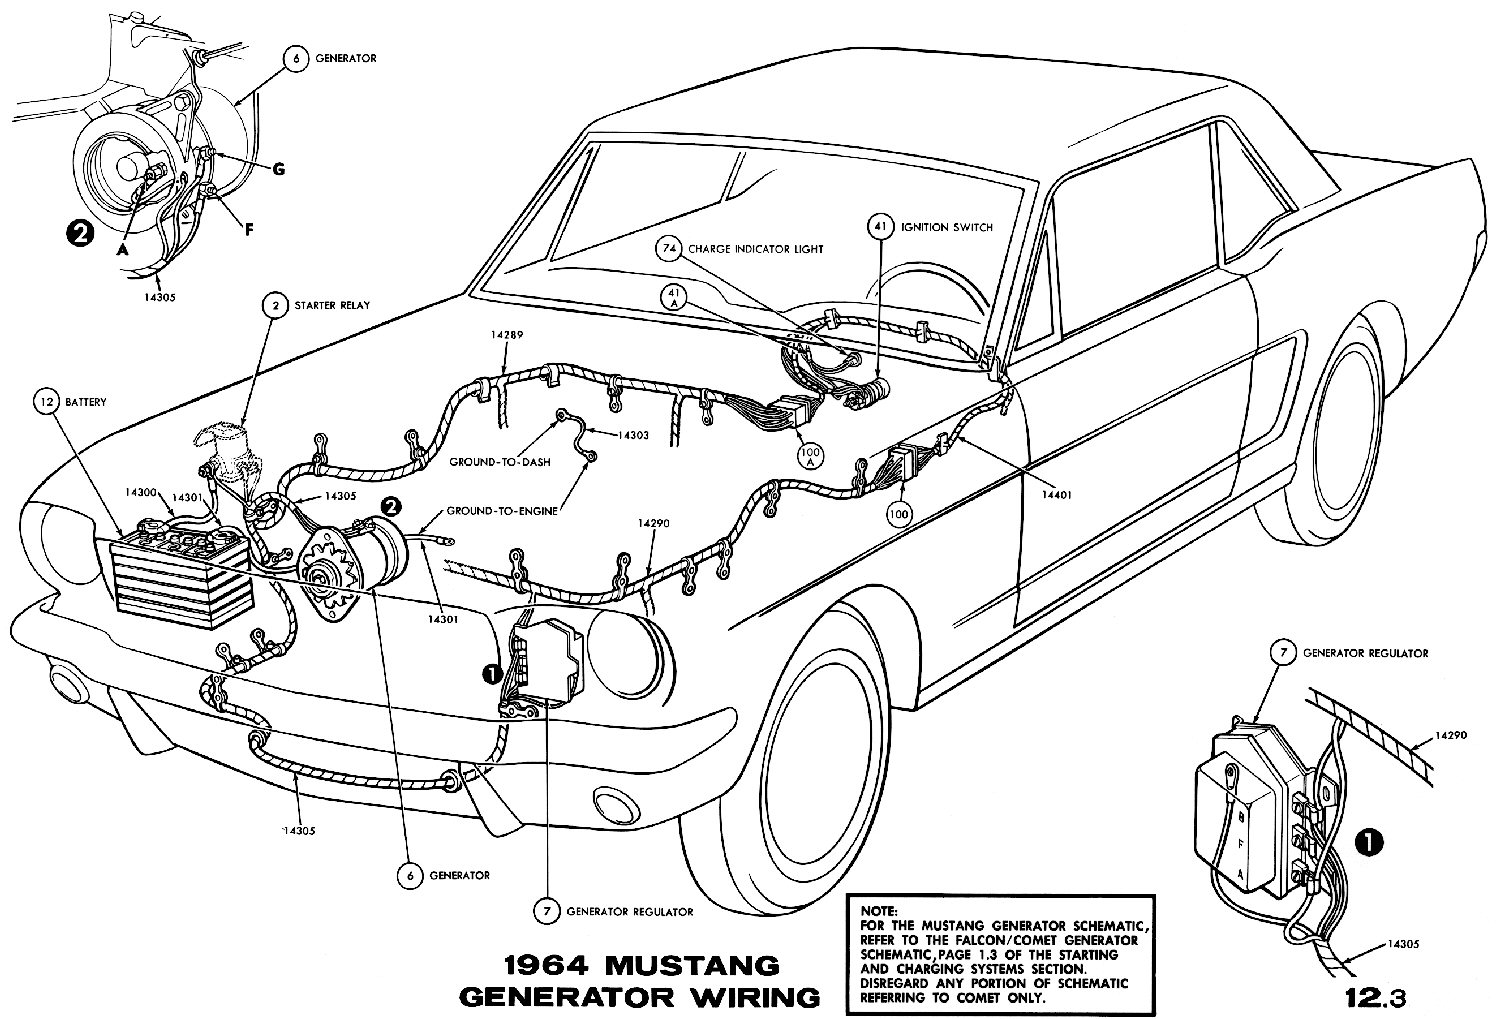 67 Mustang Engine Wiring Diagram Library 1967 Electrical 1964 Diagrams Average Joe Restoration 2000 64